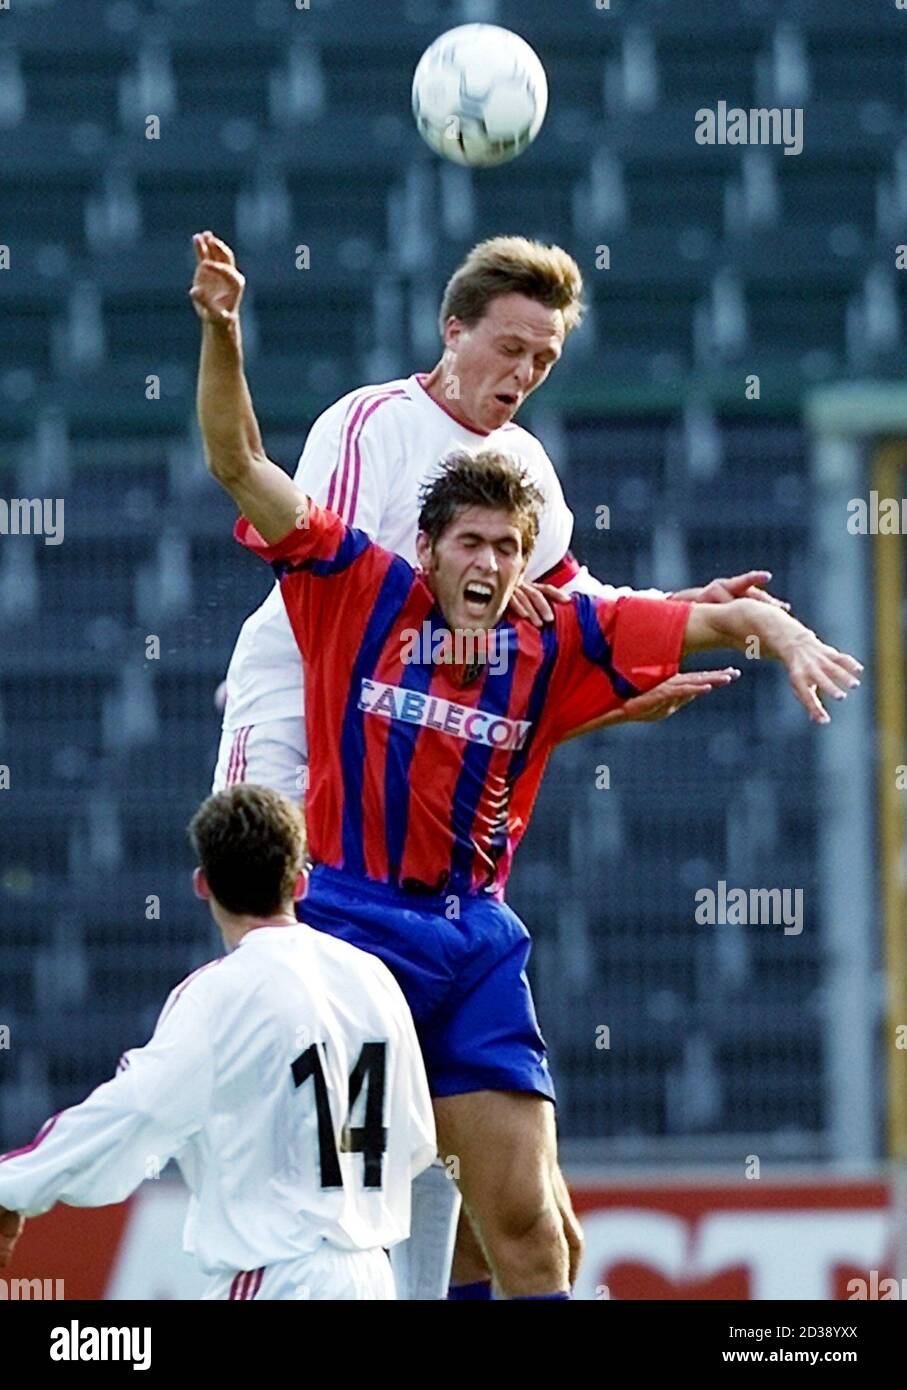 Feliciano Magro (C) of FC Basel and Egli Ulfstein (C above) of Norway's SK Brann Bergen jump for the ball as Sergei Terehhov (L) looks on during the UEFA Cup first round first leg match FC Basel vs. SK Brann Bergen in Zurich, Switzerland, September 12, 2000.  SIB/HM/JRE Stock Photo